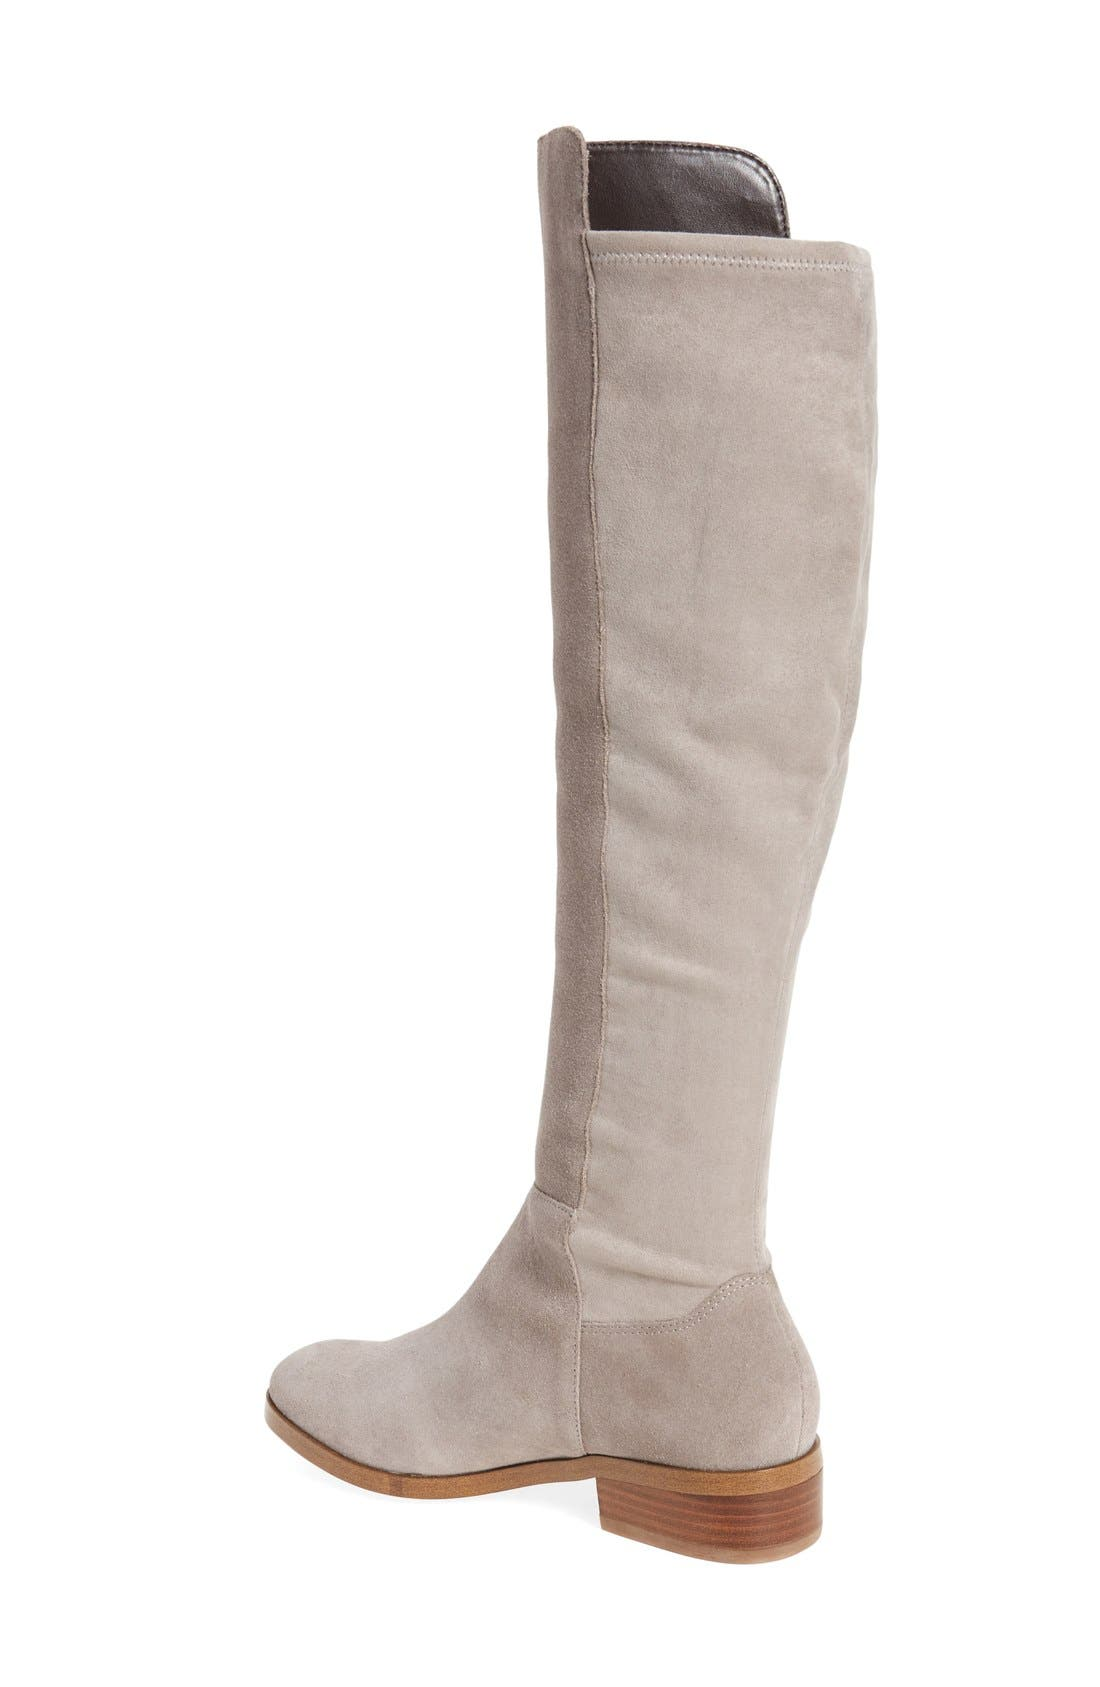 Calypso Over the Knee Boot,                             Alternate thumbnail 2, color,                             MUSHROOM SUEDE